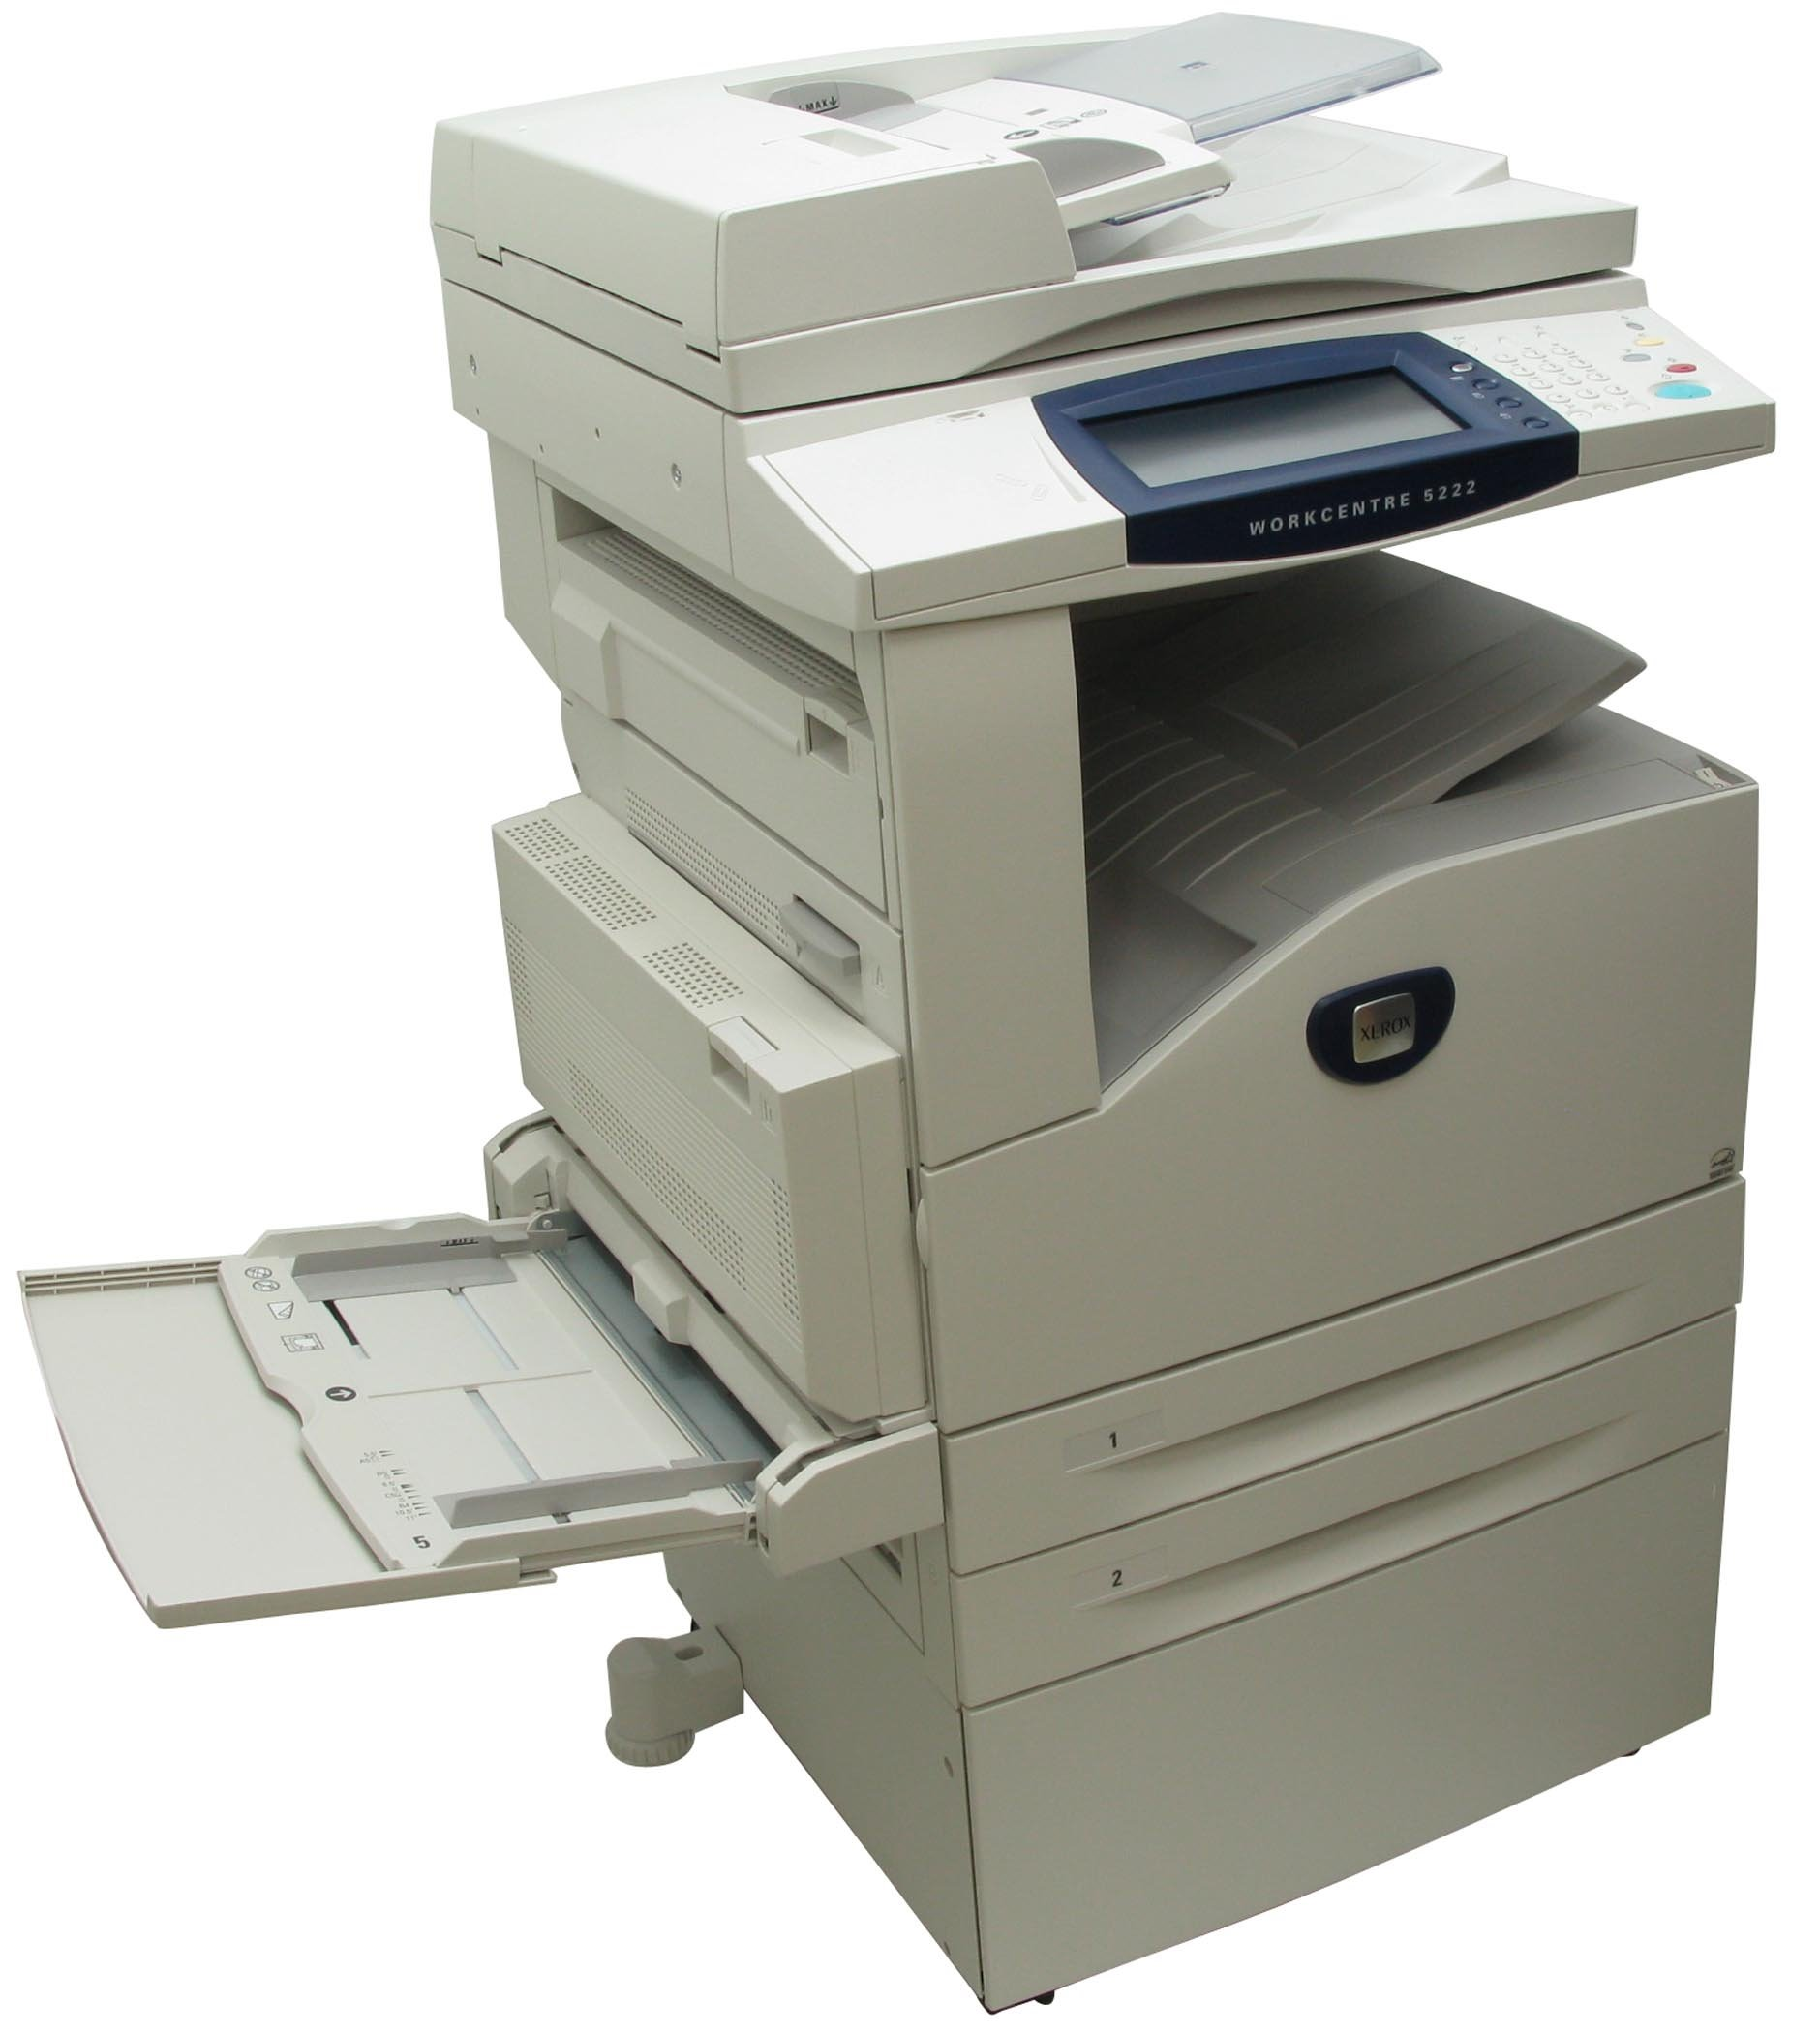 Принтер Xerox WorkCentre 5222 Printer/Copier